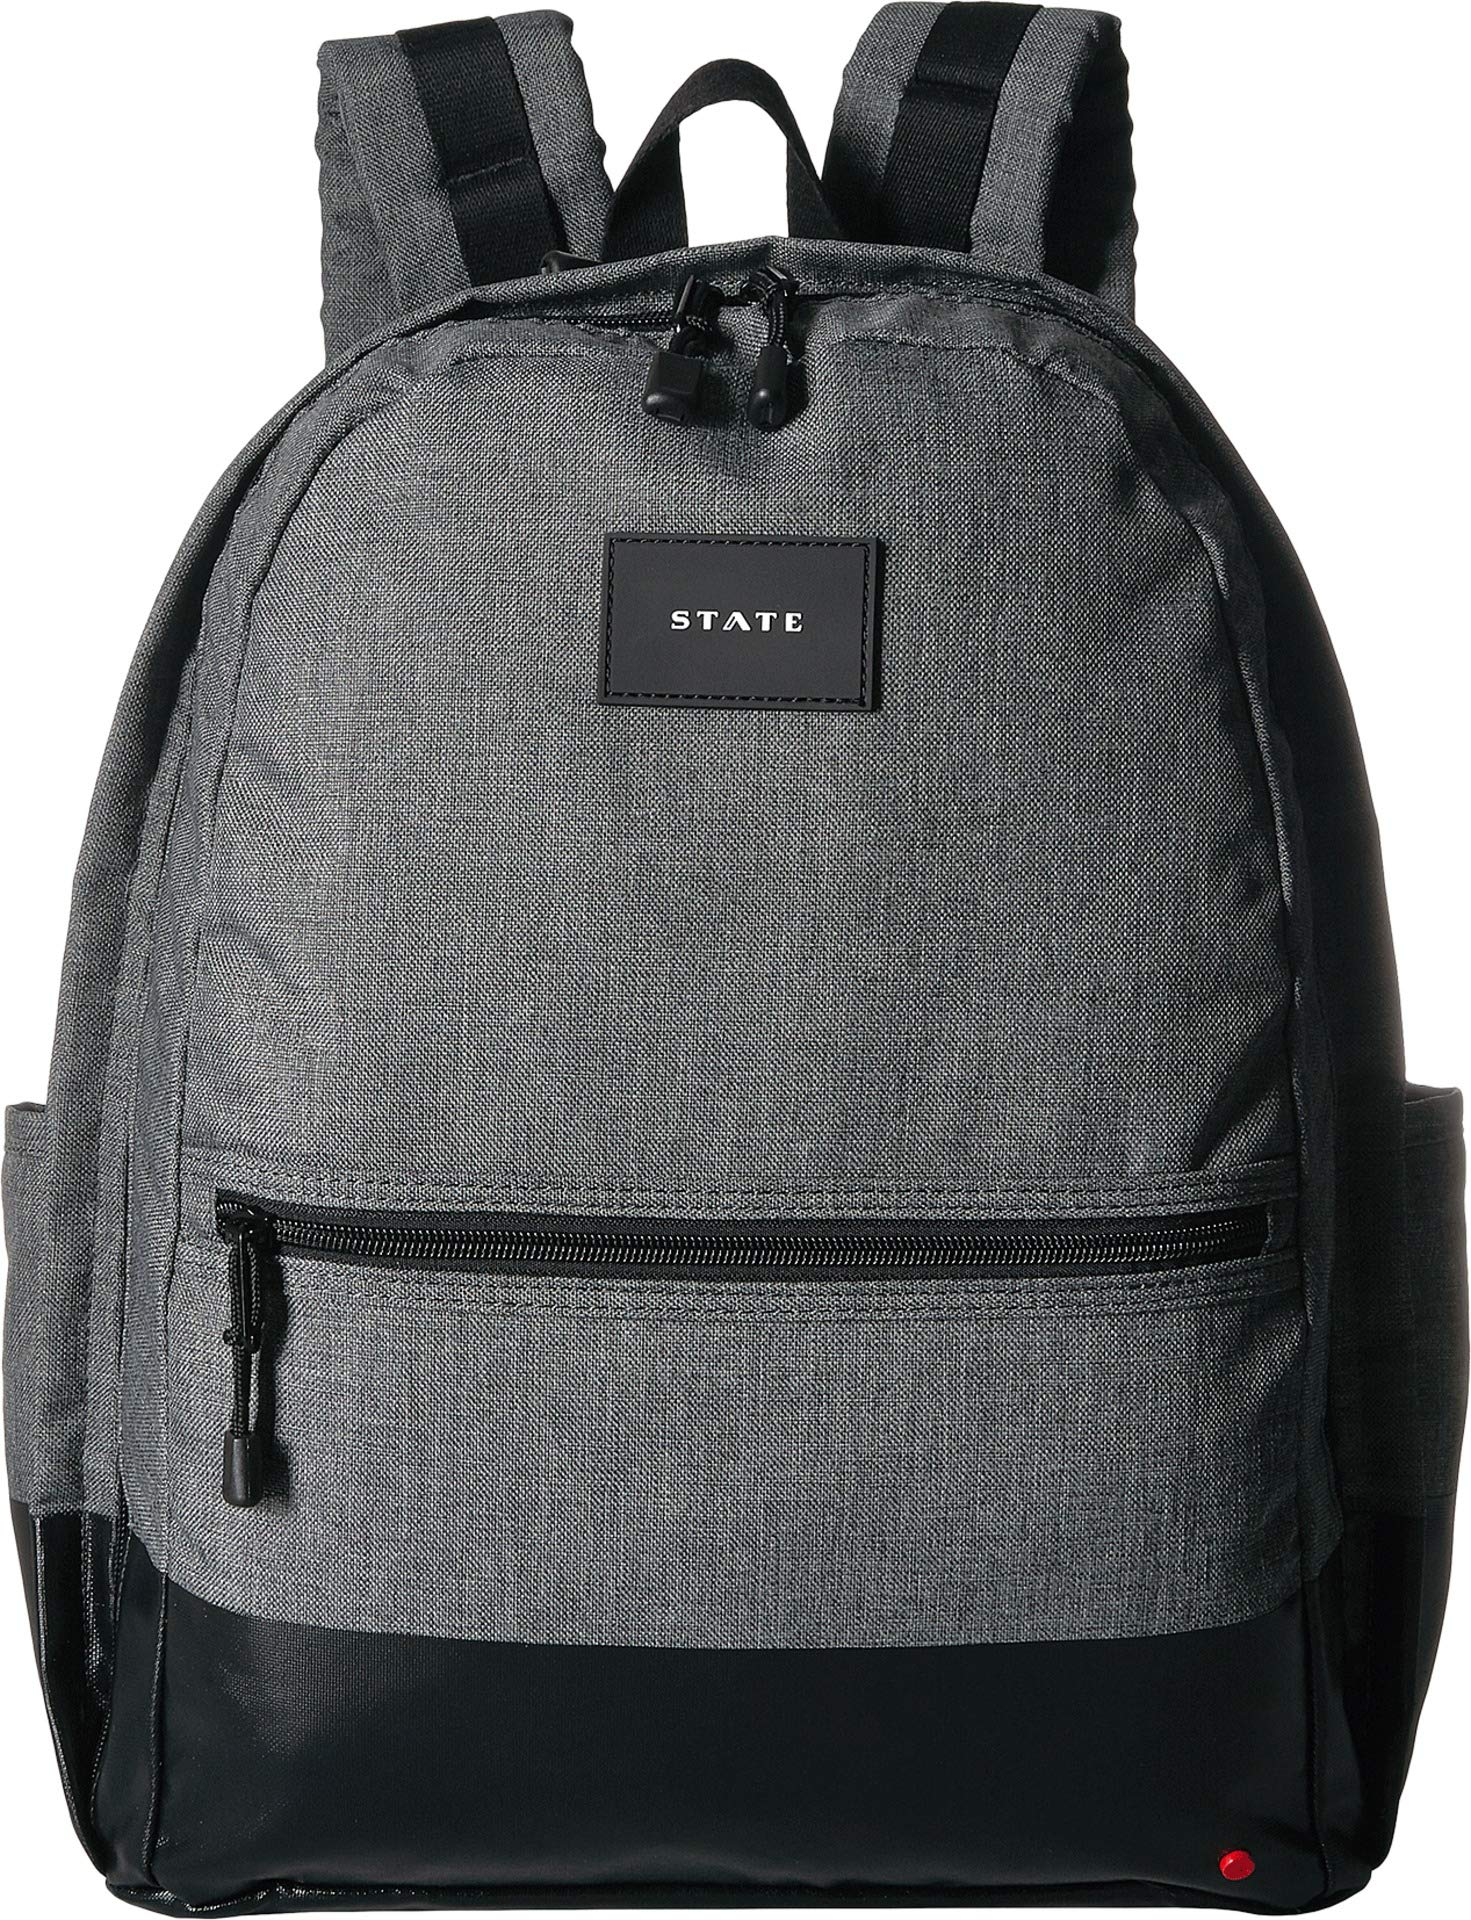 STATE Bags Unisex Bedford Dark Grey One Size by STATE Bags